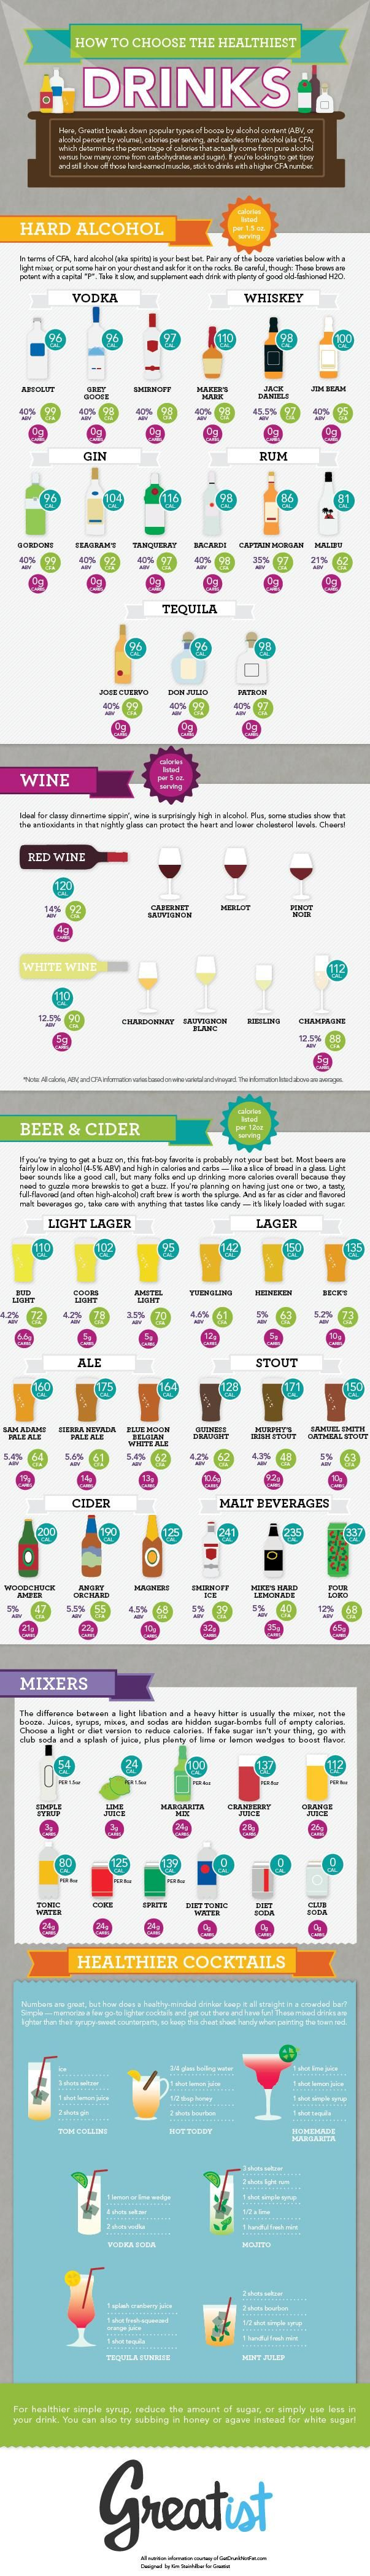 infographic alcohol content and weight gain